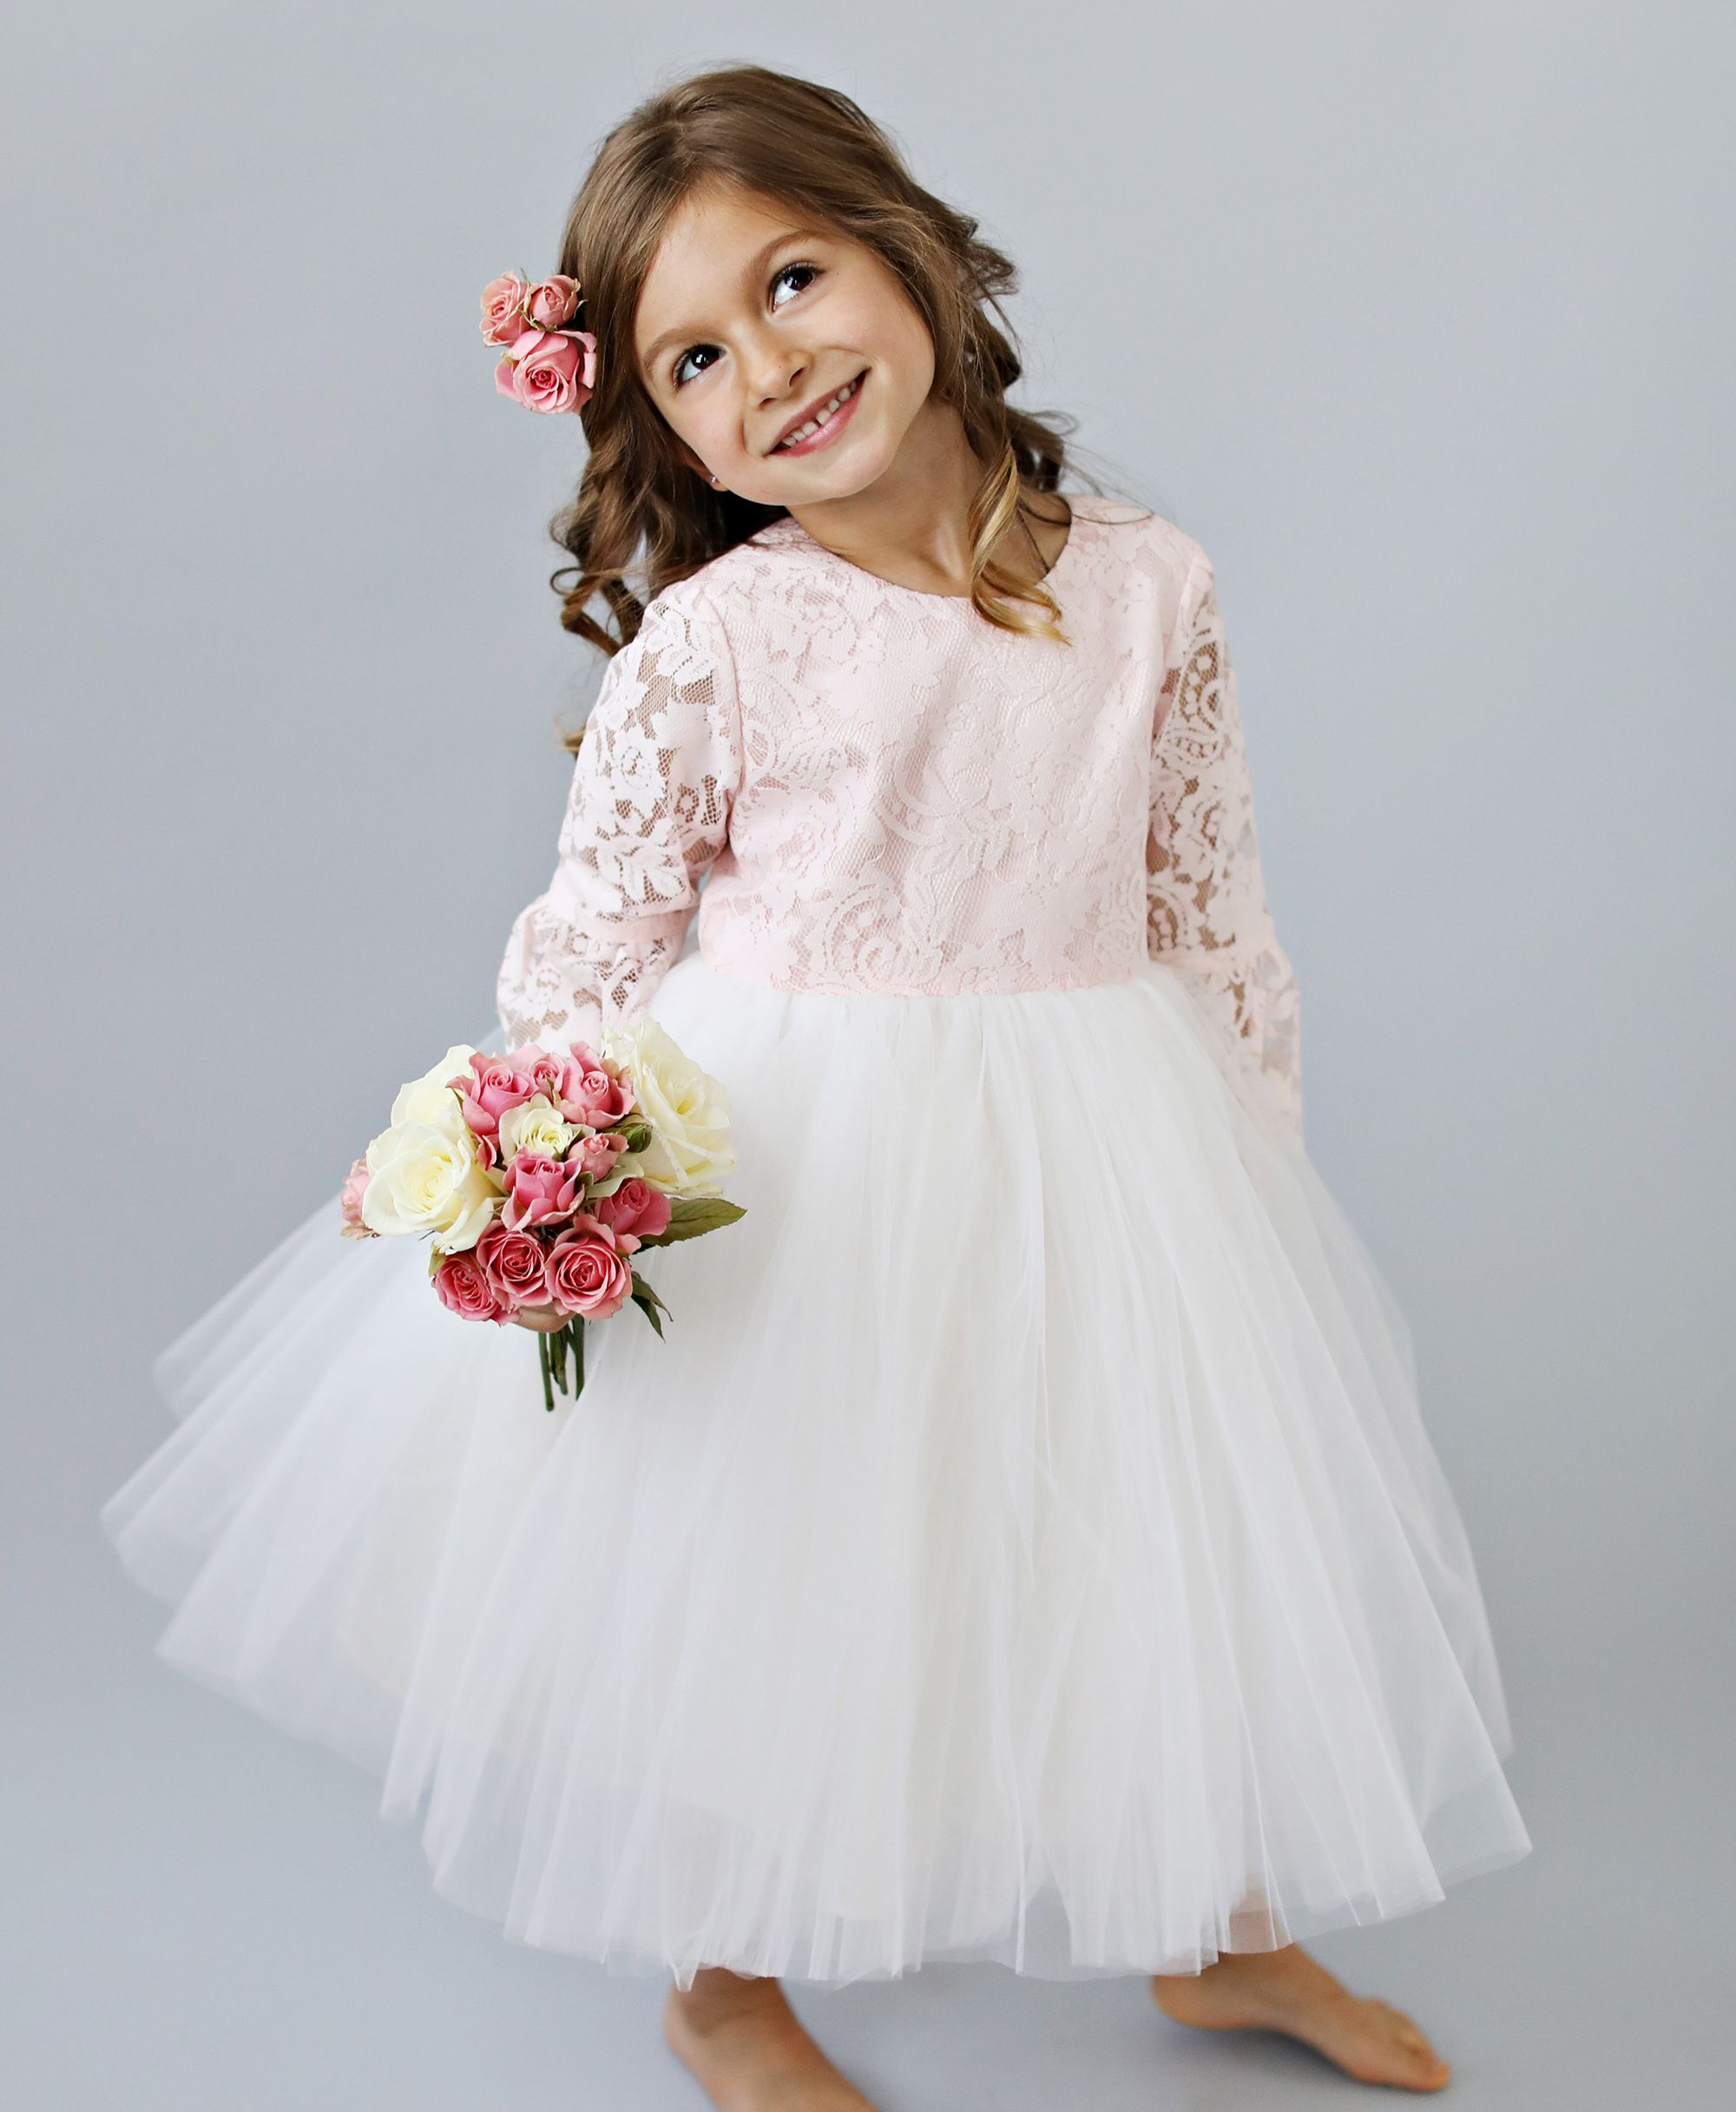 dbcdc0f0586 Need last minute flower girl dresses ! Shop our ready to ship flower girl  dresses